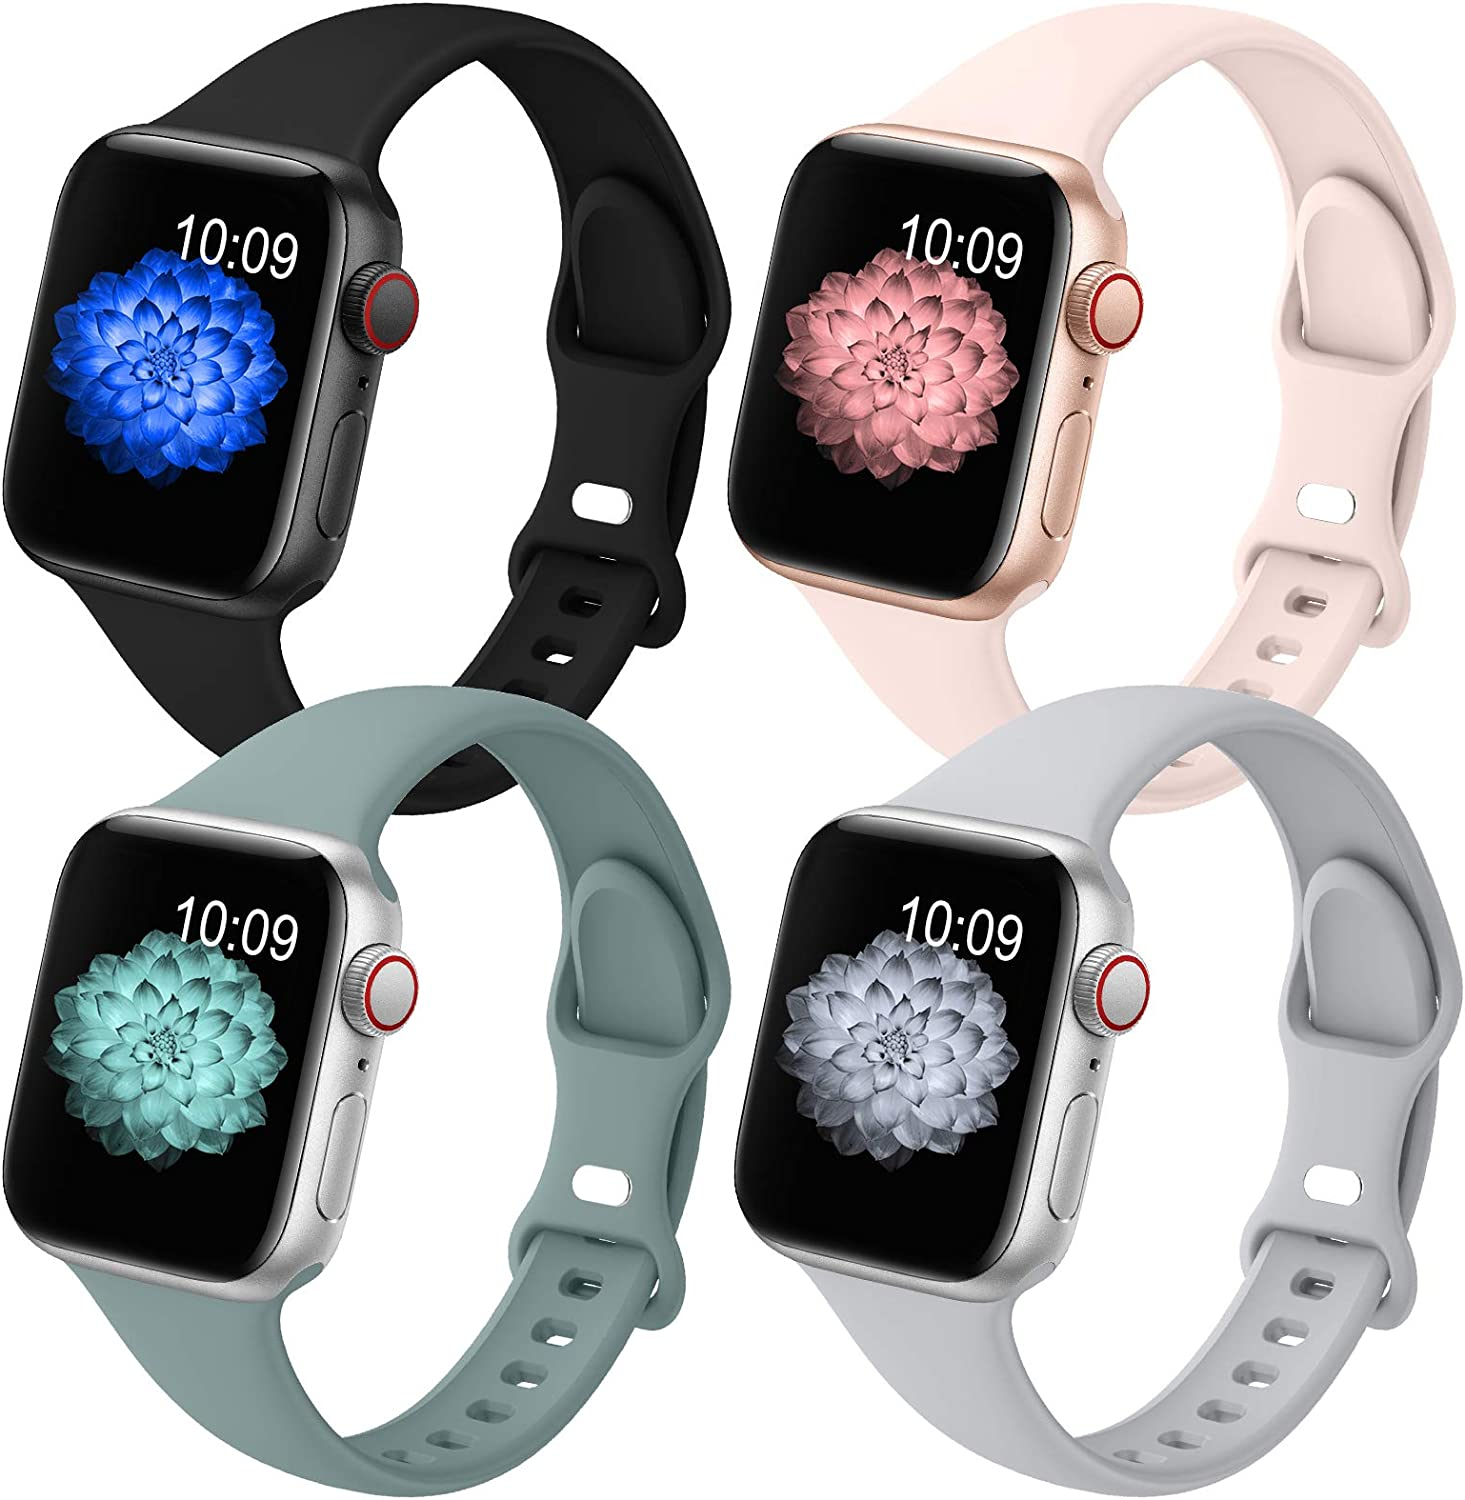 GeekSpark 4 Pack Slim Band Compatible with Apple Watch Band 38mm 40mm 42mm 44mm for Women Men, Thin Narrow Soft Silicone Replacement Strap Band for iwatch SE/Series 6/5/4/3/2/1